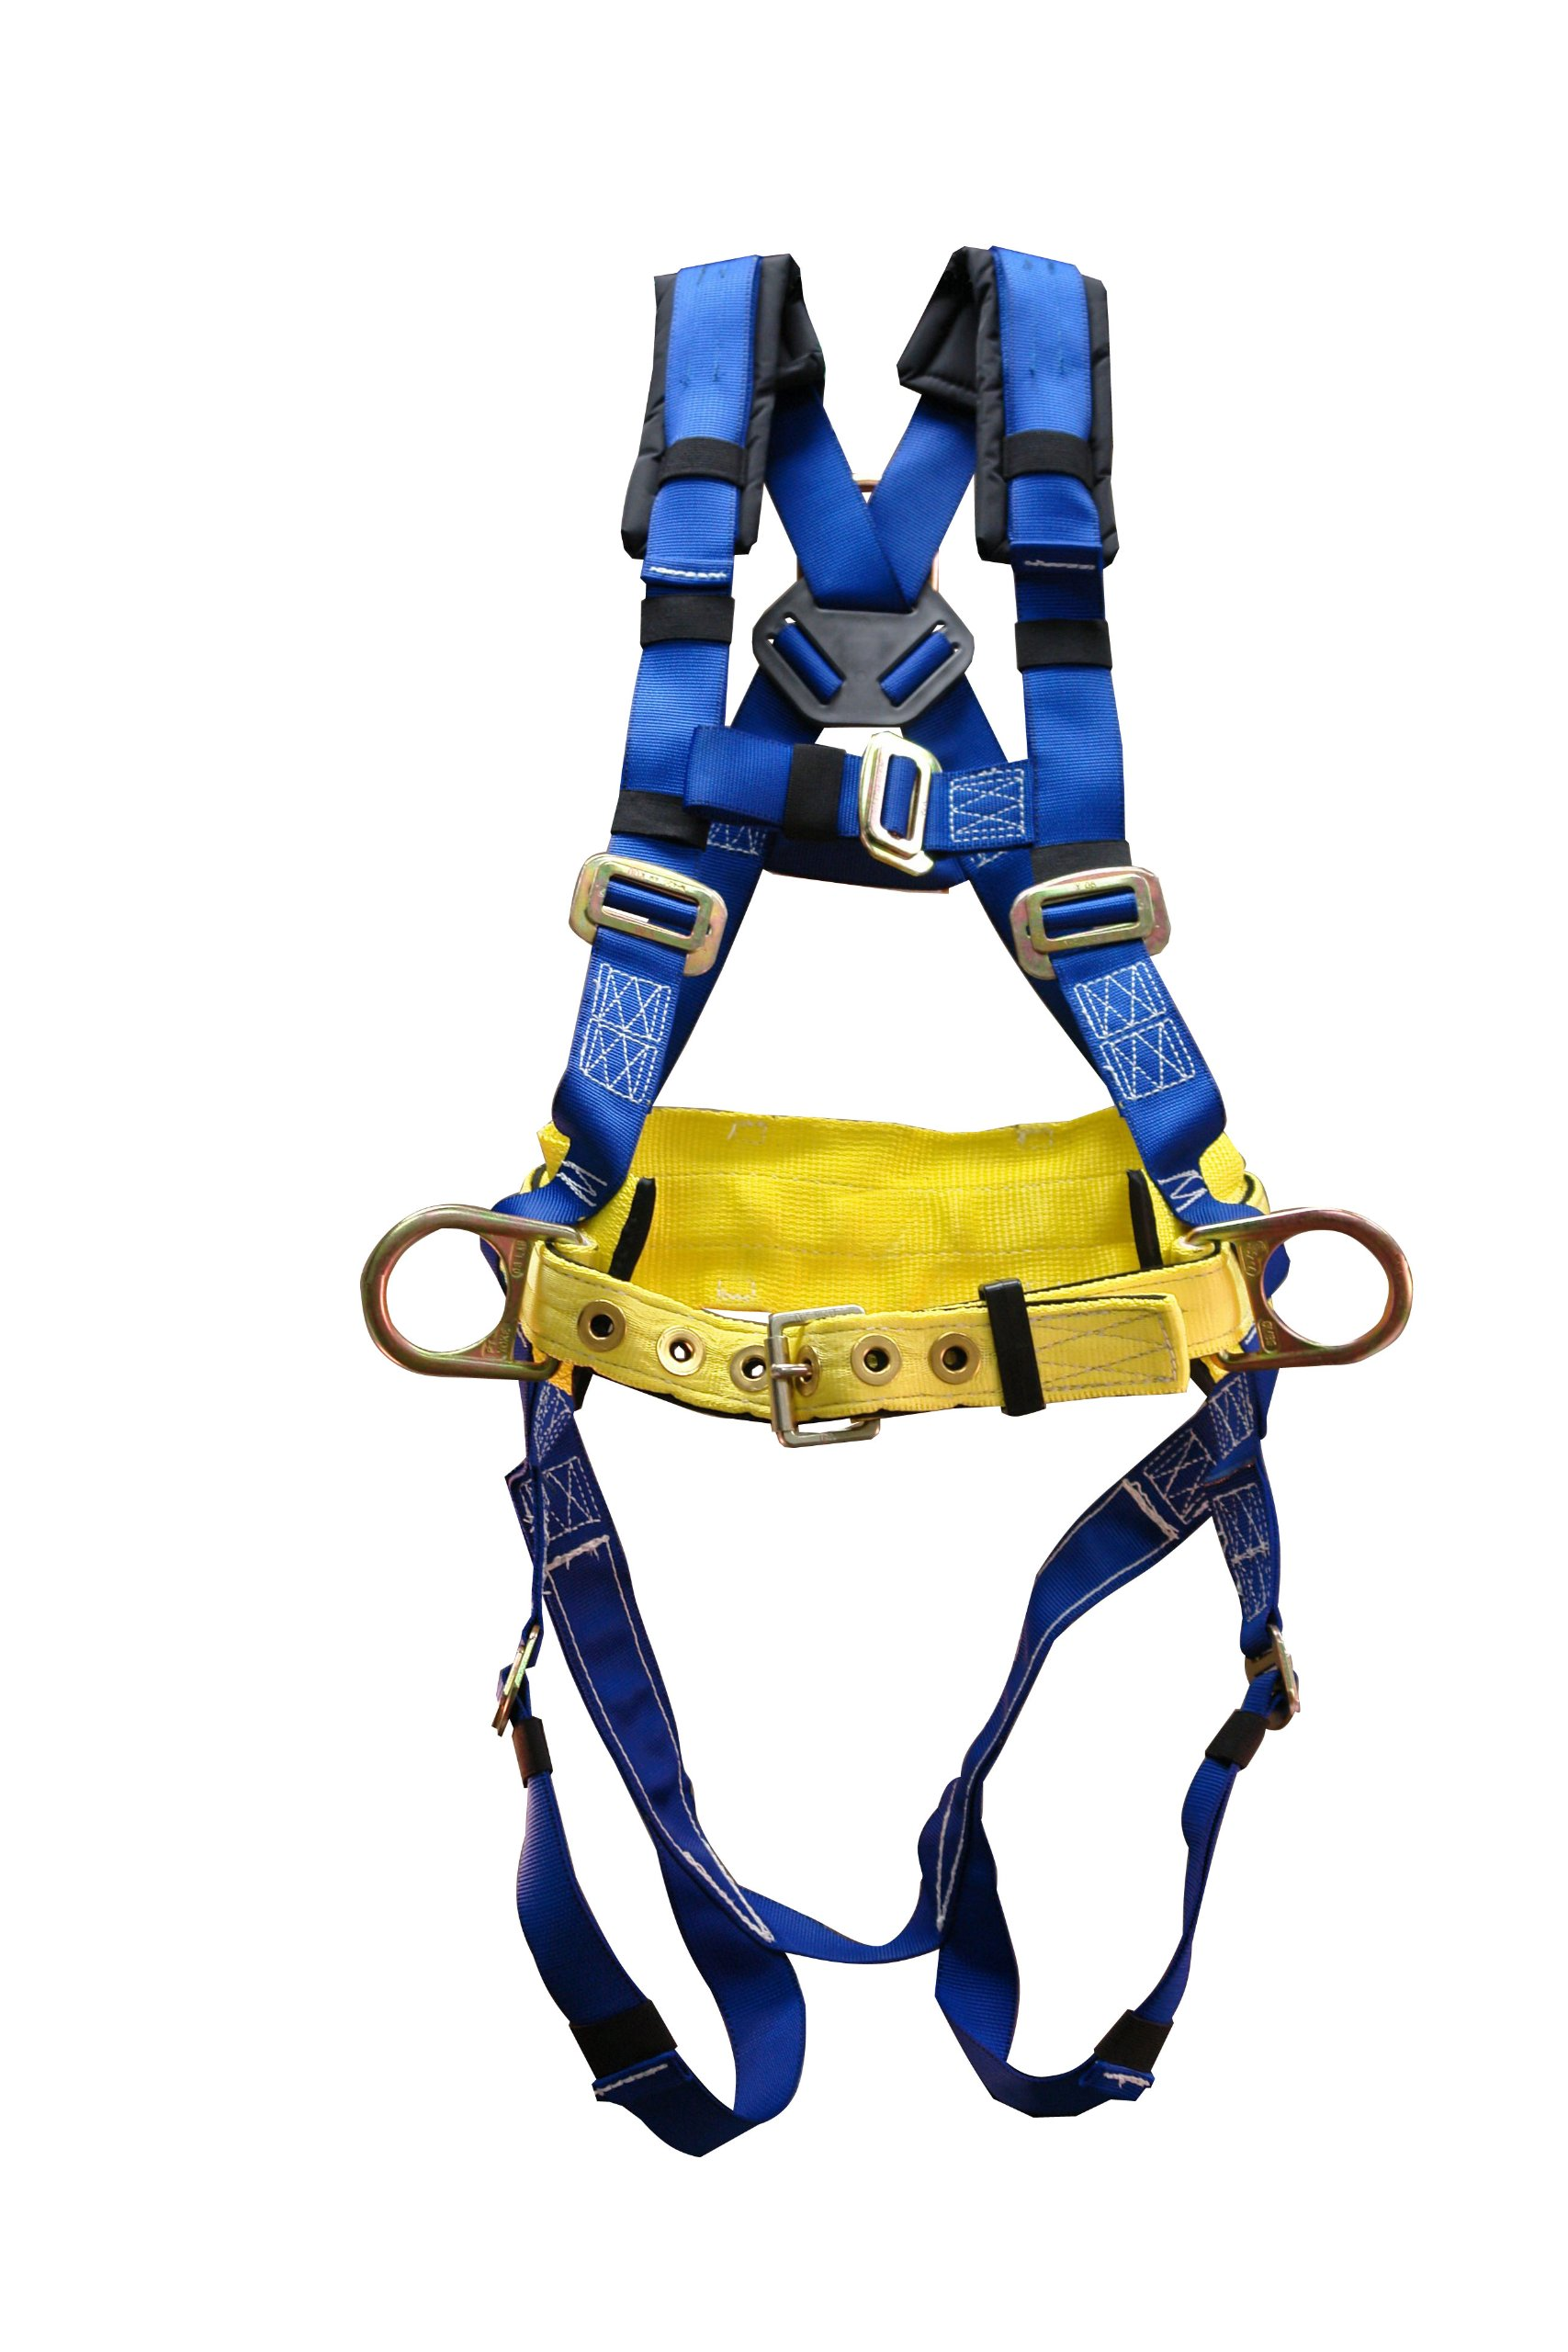 Elk River 74304 WearMaster Polyester/Nylon 3 D Ring Harness with Mating Buckles, X-Large by Elk River